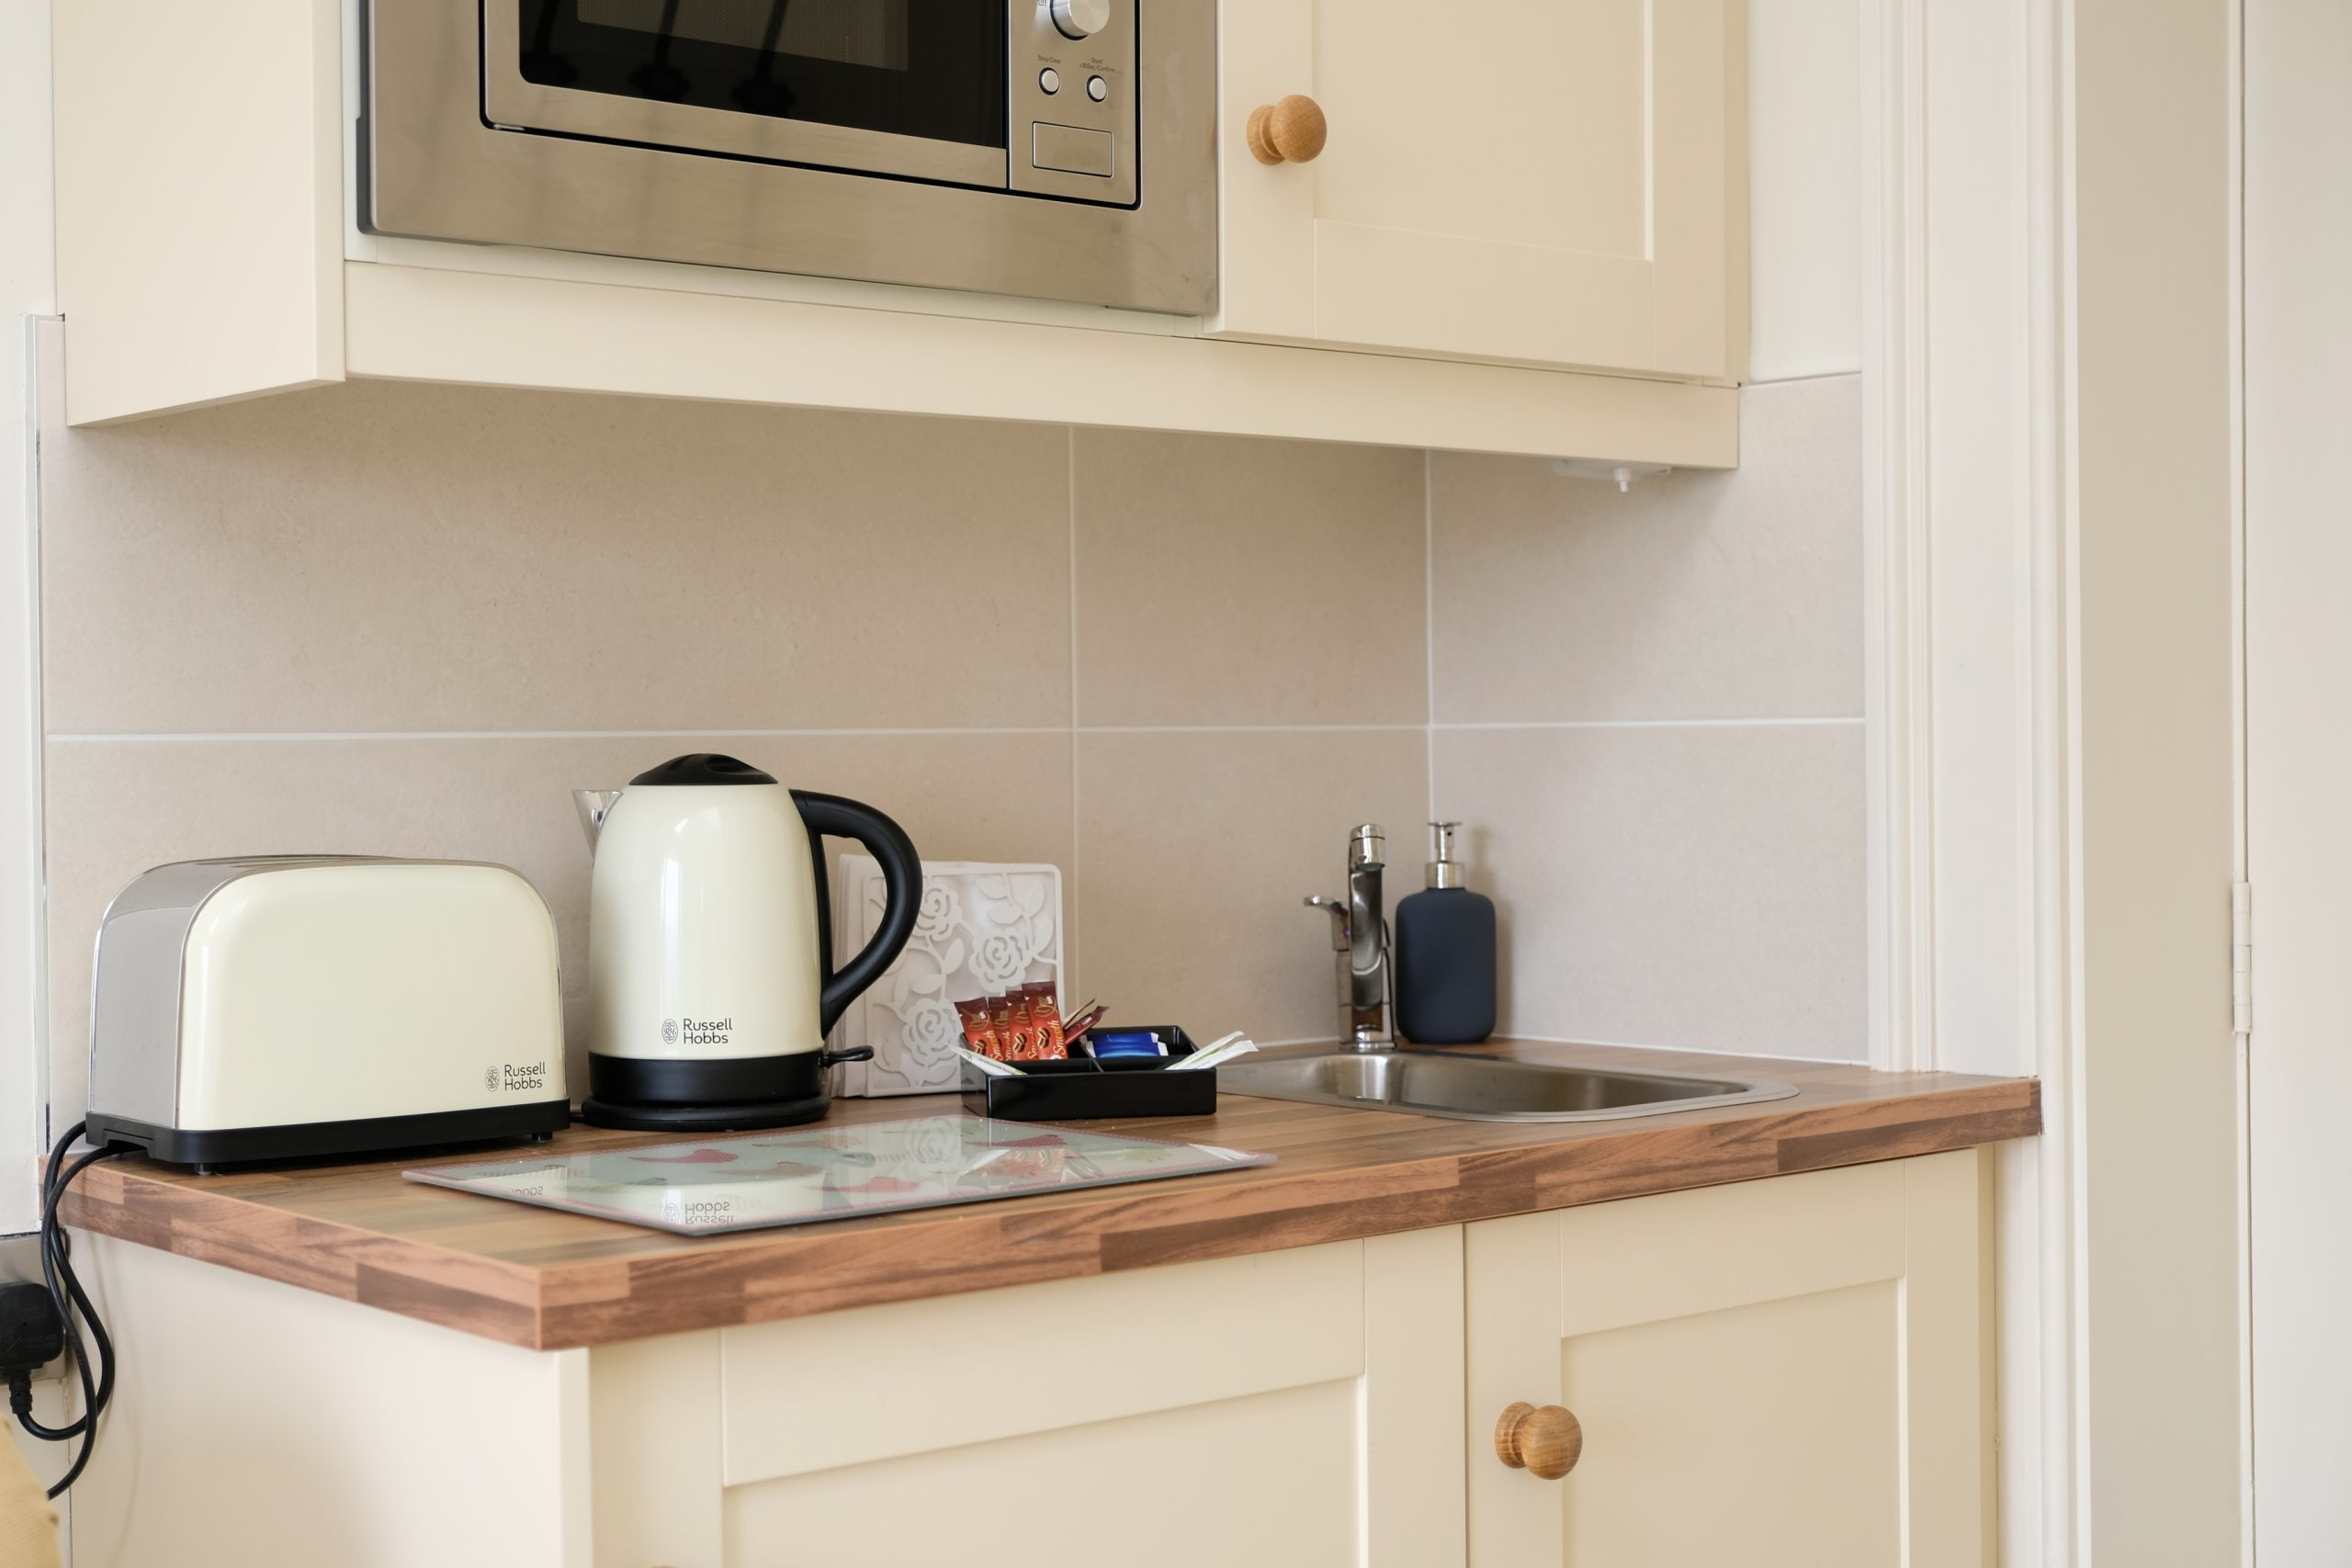 Kitching worktop with electrical appliances, photo 2